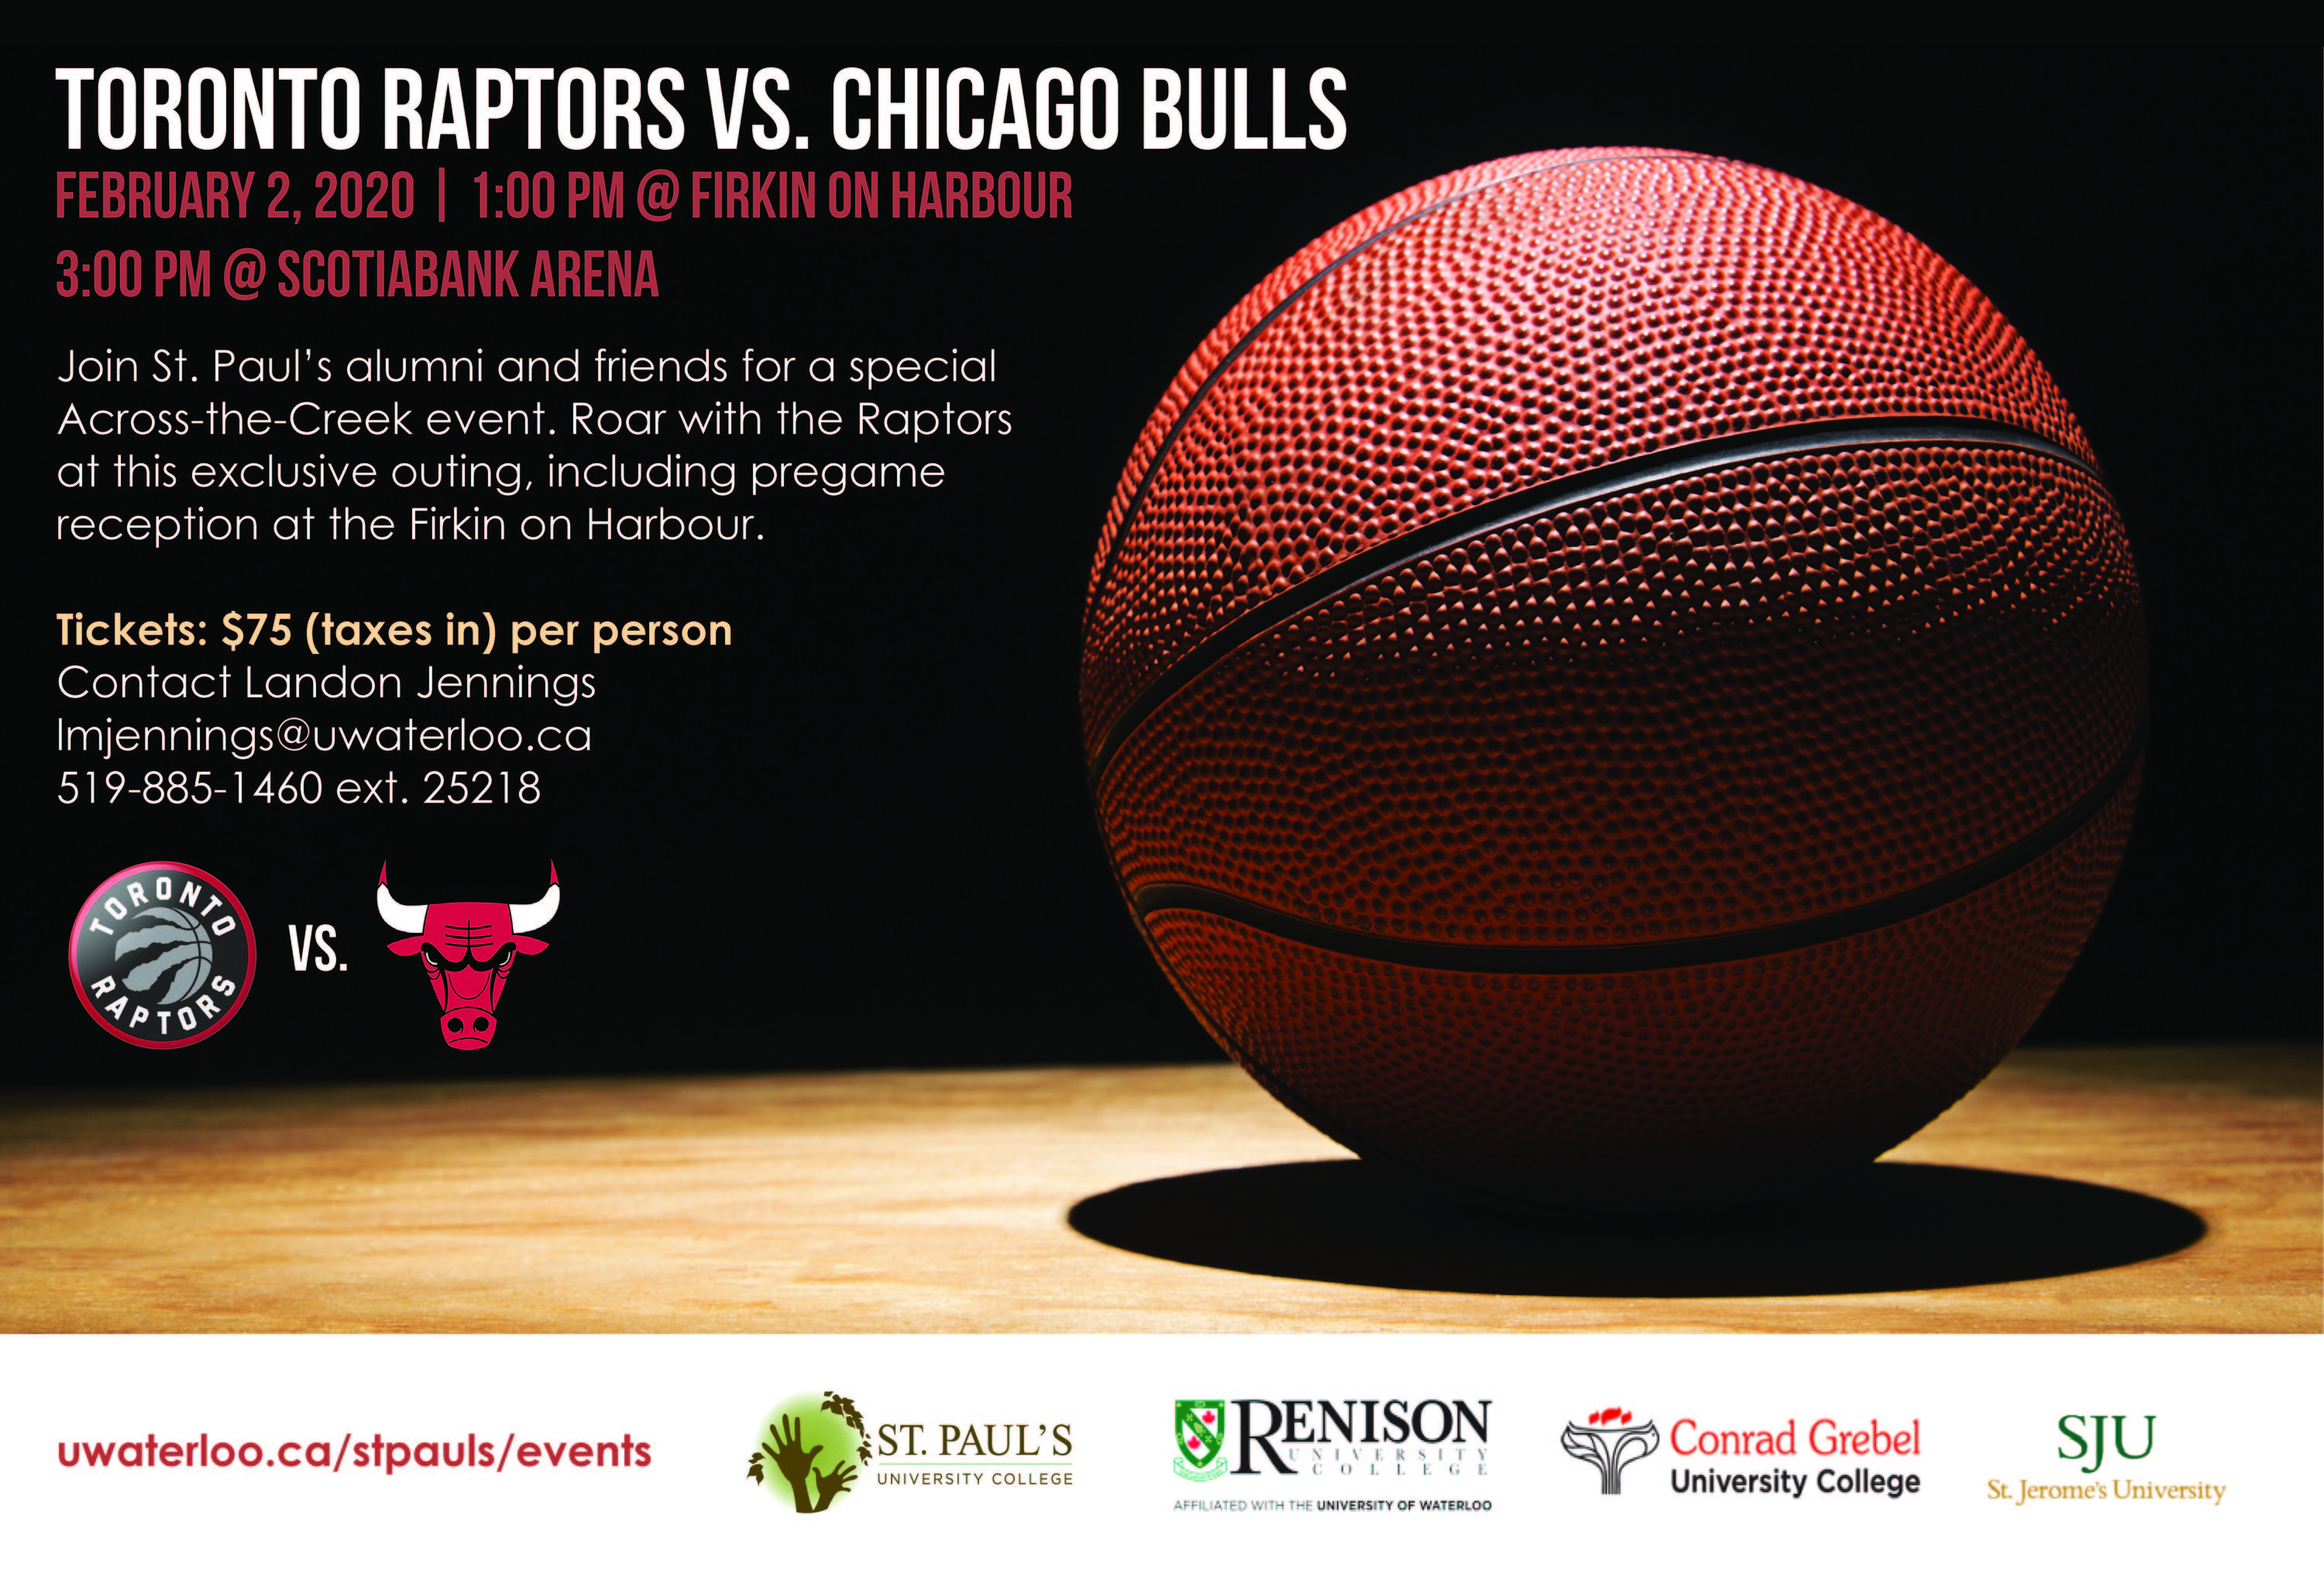 an event promotional image with a basketball and logos of Chicago Bulls and Toronto Raptors